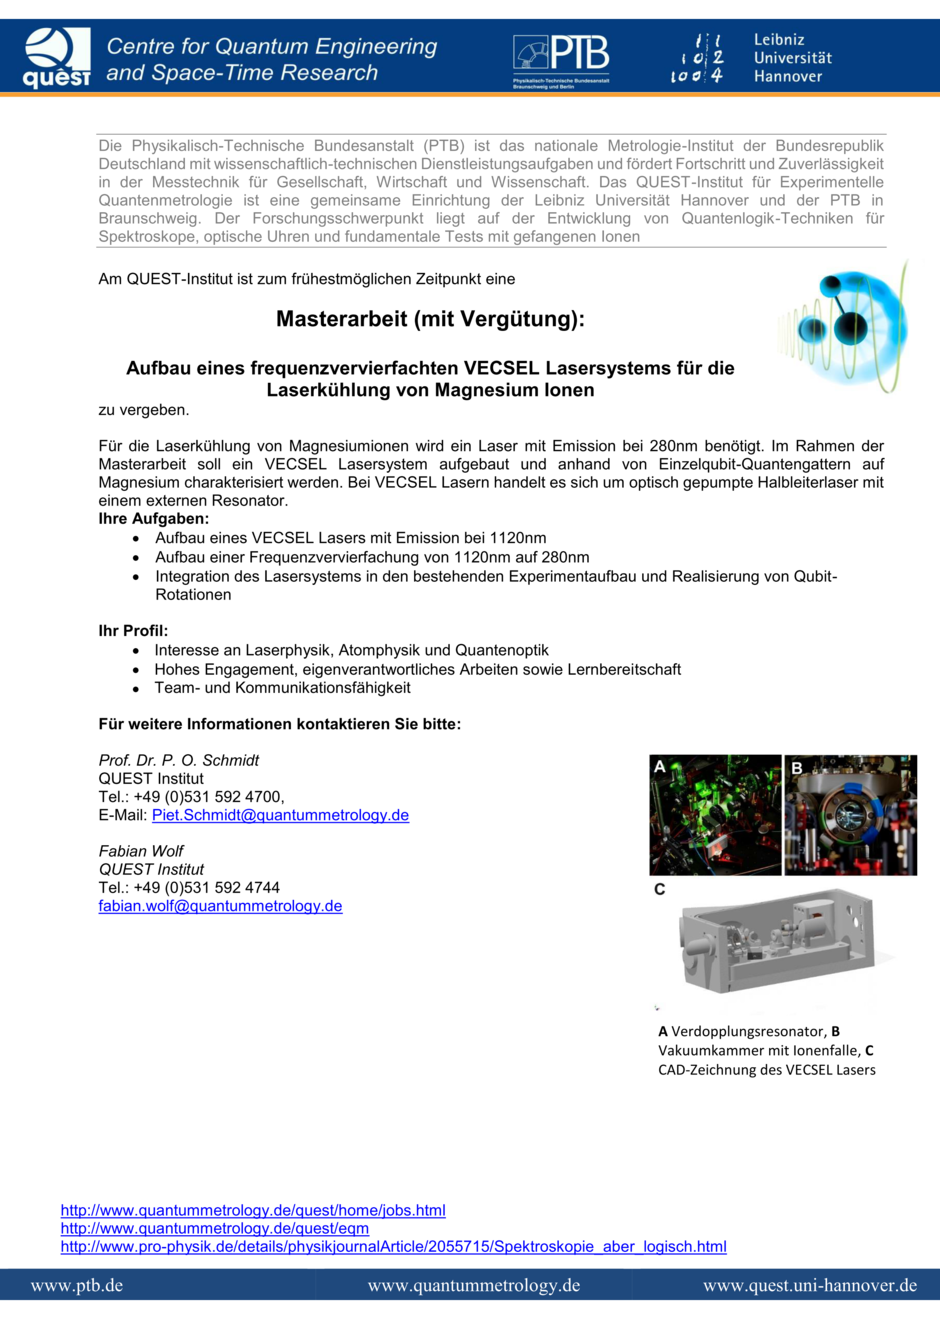 Quantummetrology - Jobs